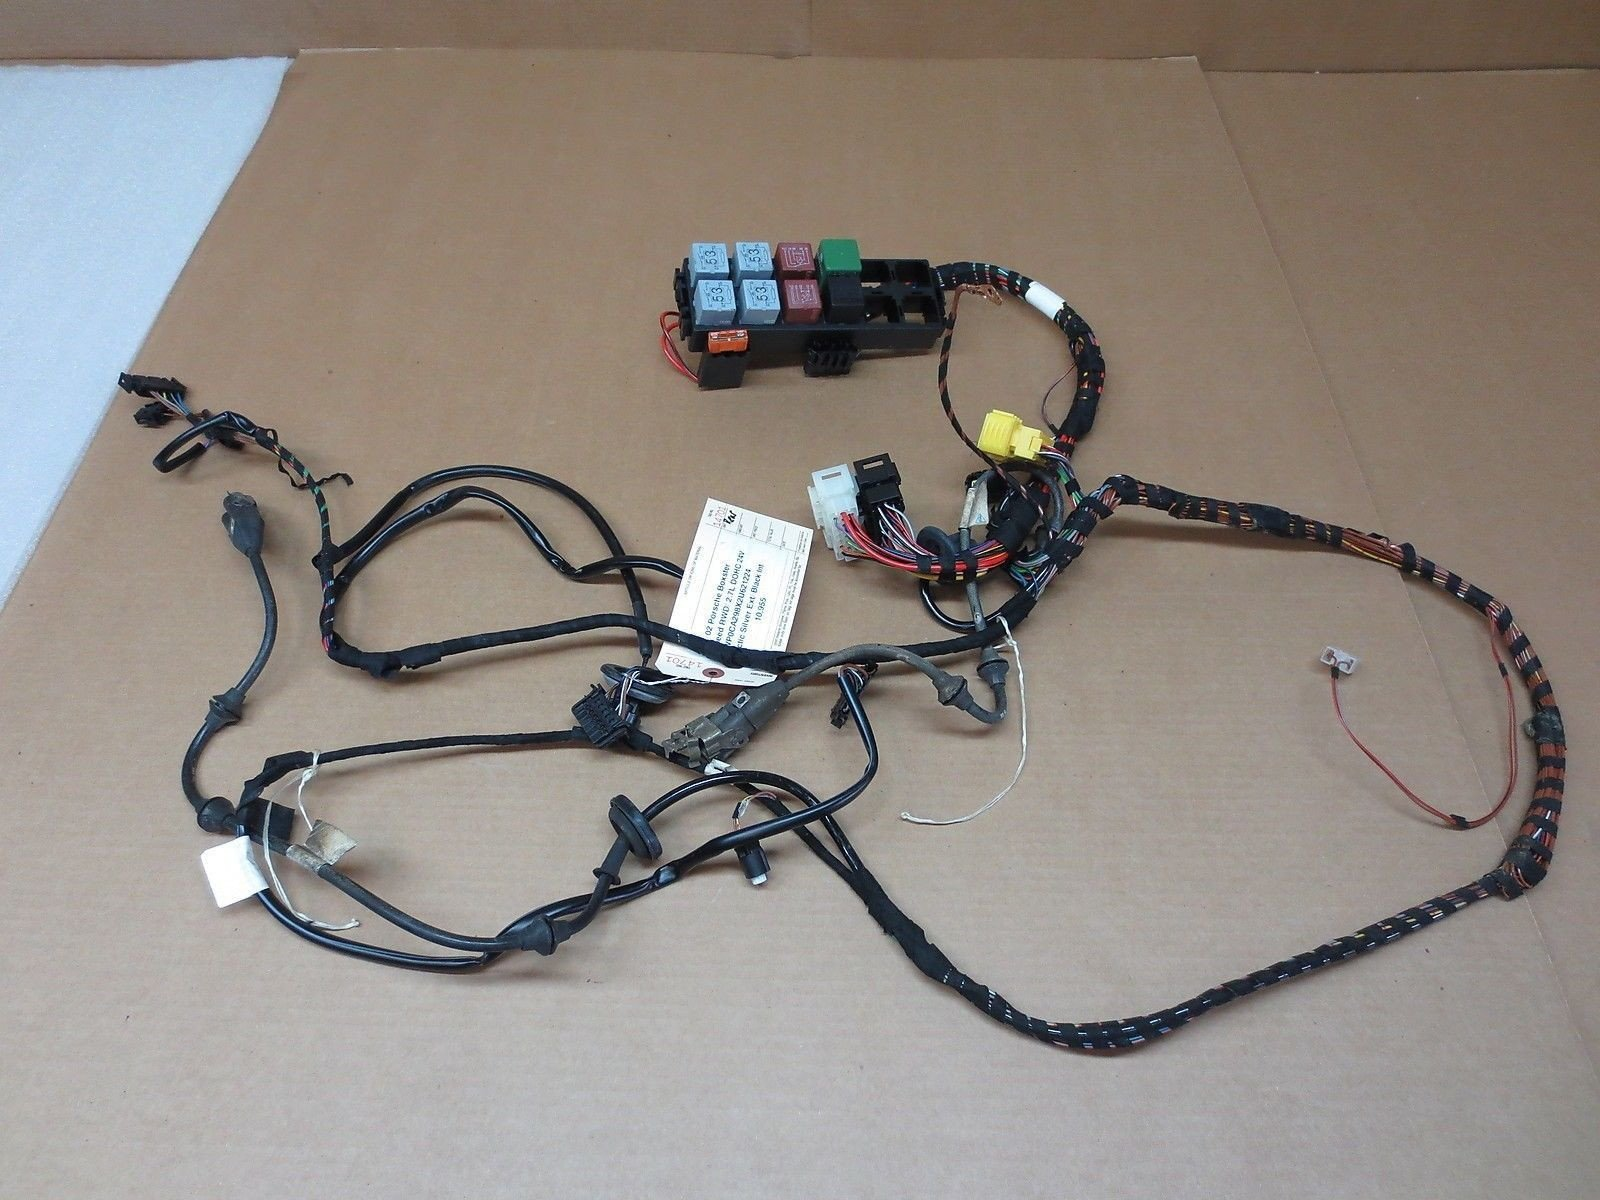 02 Porsche 911 BOXSTER 986 REAR WIRE HARNESS wiring loom relays back 10,955